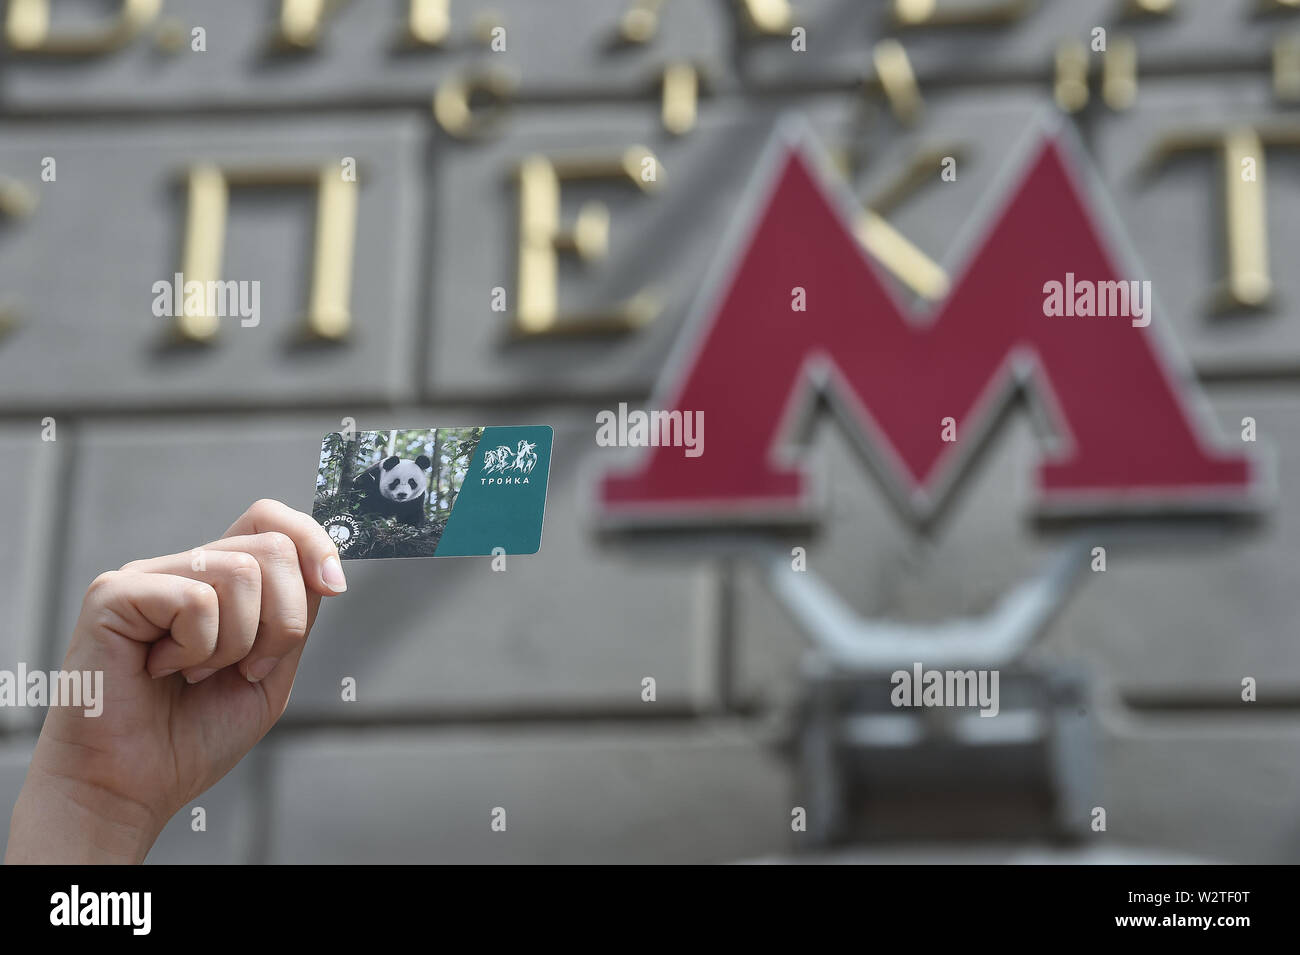 Moscow. 10th July, 2019. The photo taken on July 10, 2019 shows a limited edition metro card Troika with a giant panda image in Moscow, Russia. Moscow subway released a limited edition of 10,000 metro cards with Chinese giant panda images to mark the 155th anniversary of Moscow Zoo that accepted two giant pandas Ru Yi and Ding Ding in late April from China. Credit: Evgeny Sinitsyn/Xinhua/Alamy Live News Stock Photo